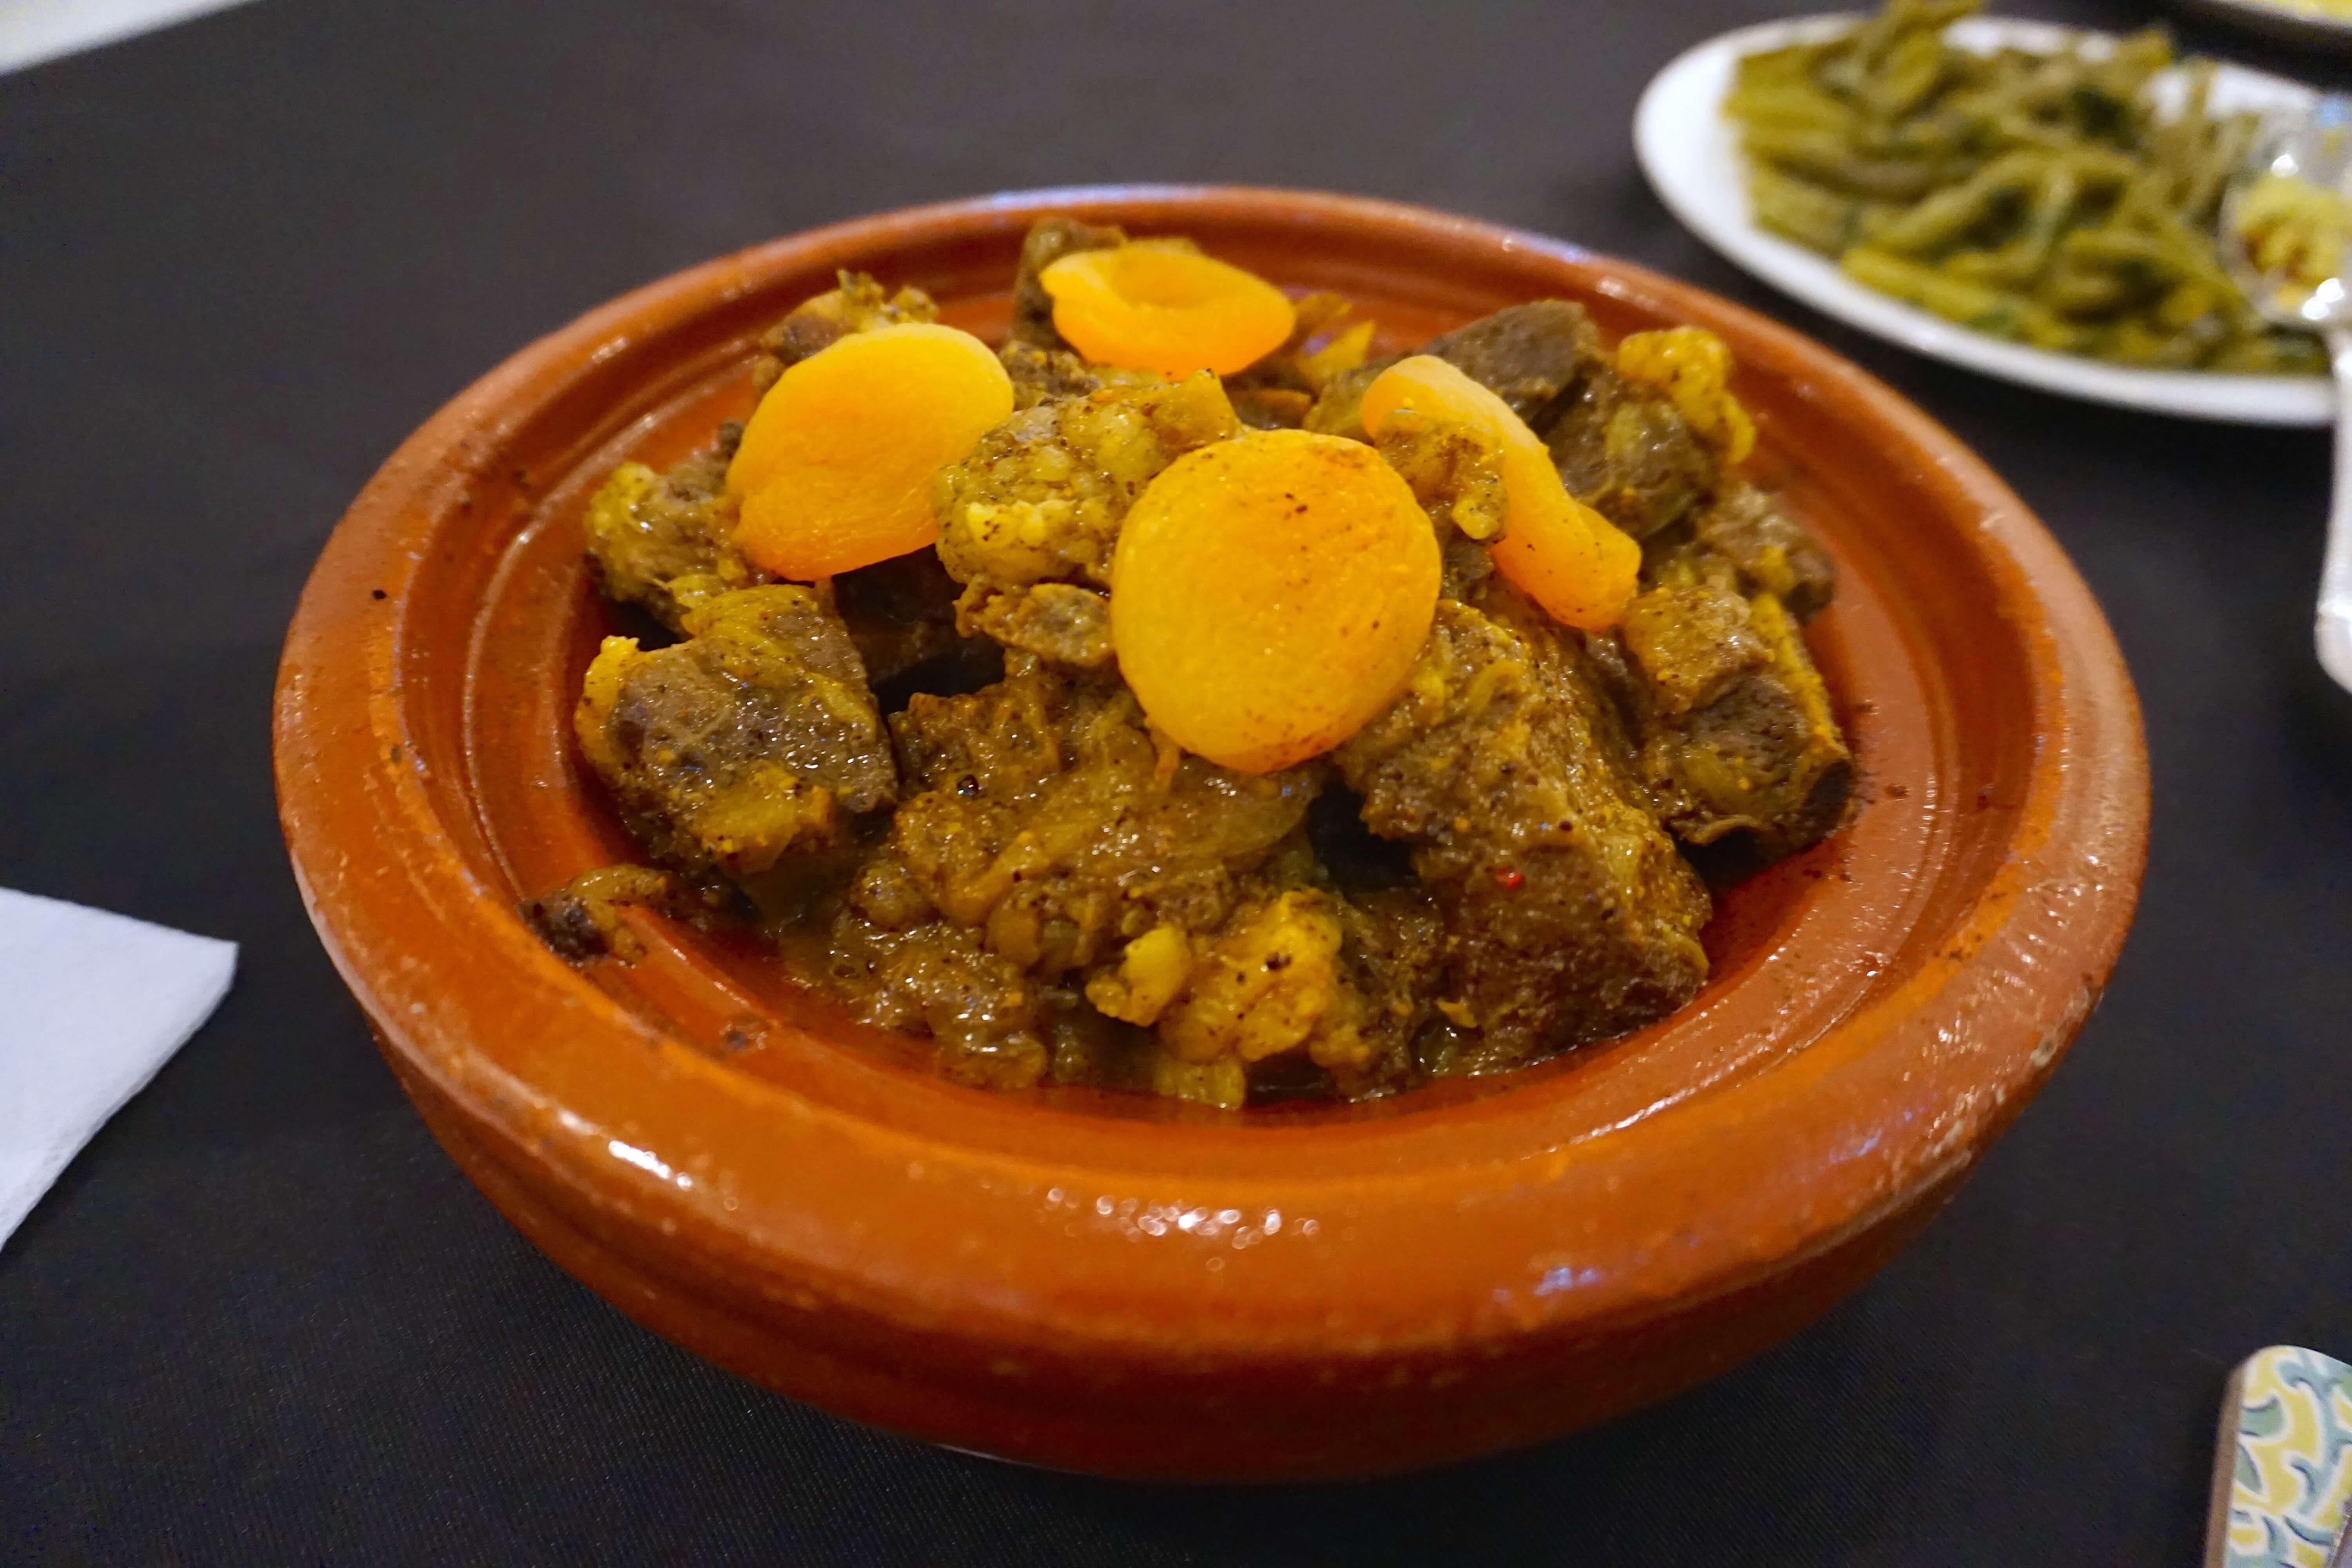 Tagine - Morocco Food Guide: Delicious foods you need to try while visiting Morocco